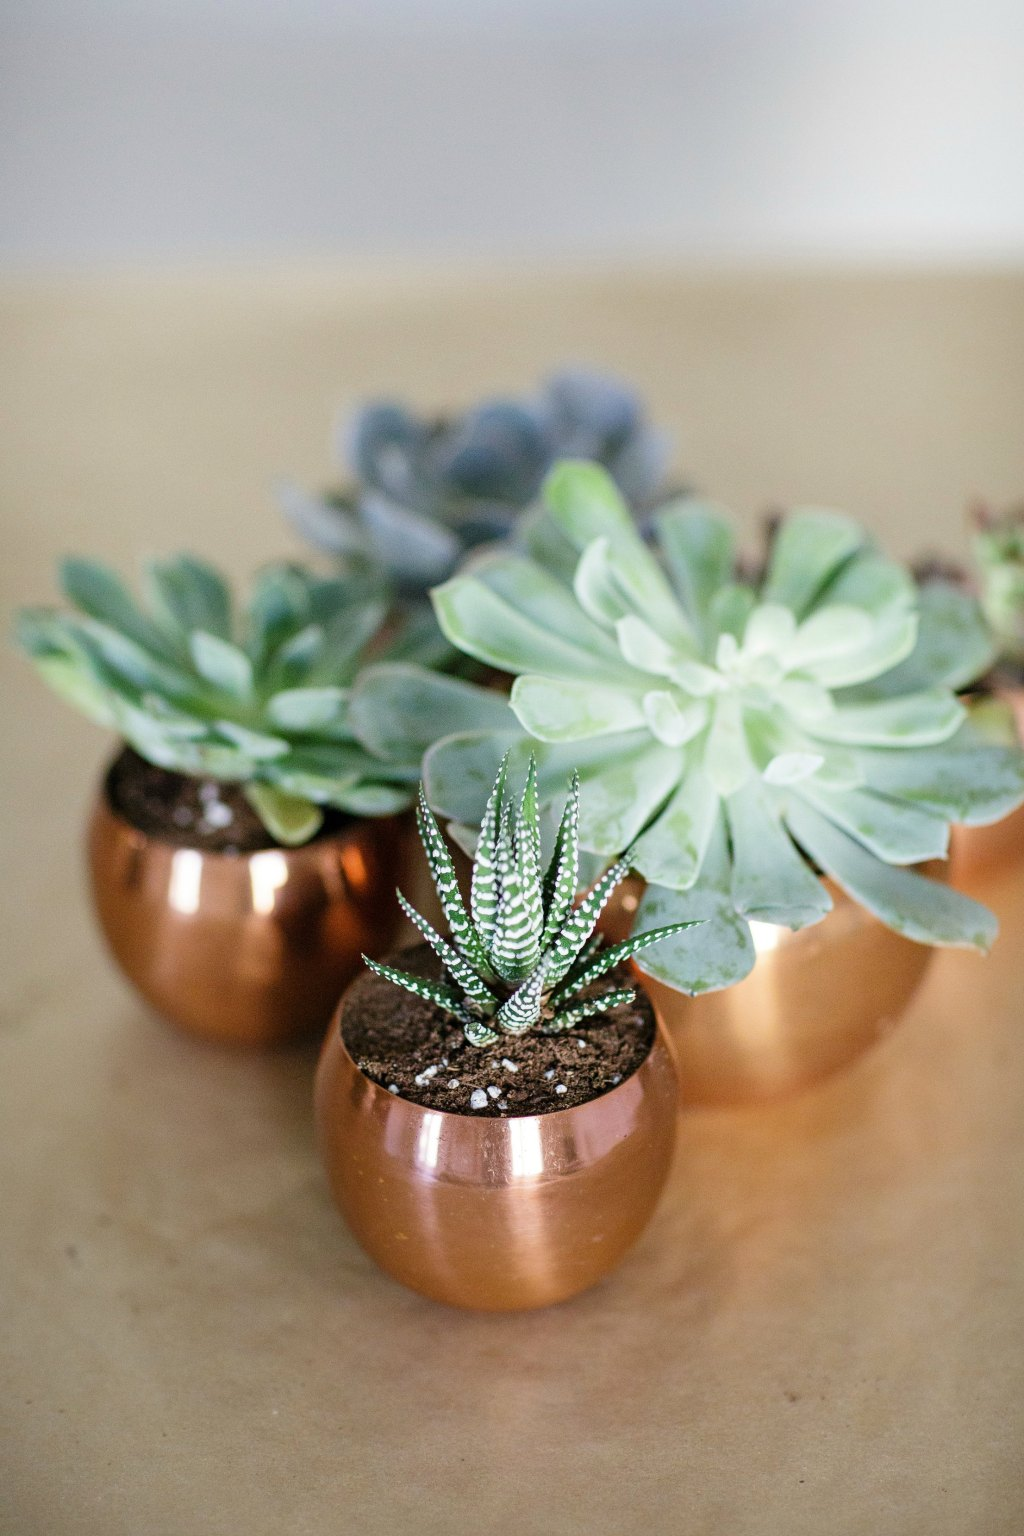 tips-for-planting-succulents-bourbon-rose-floral-design-rose-city-style-guide-canadian-lifestyle-blog-9